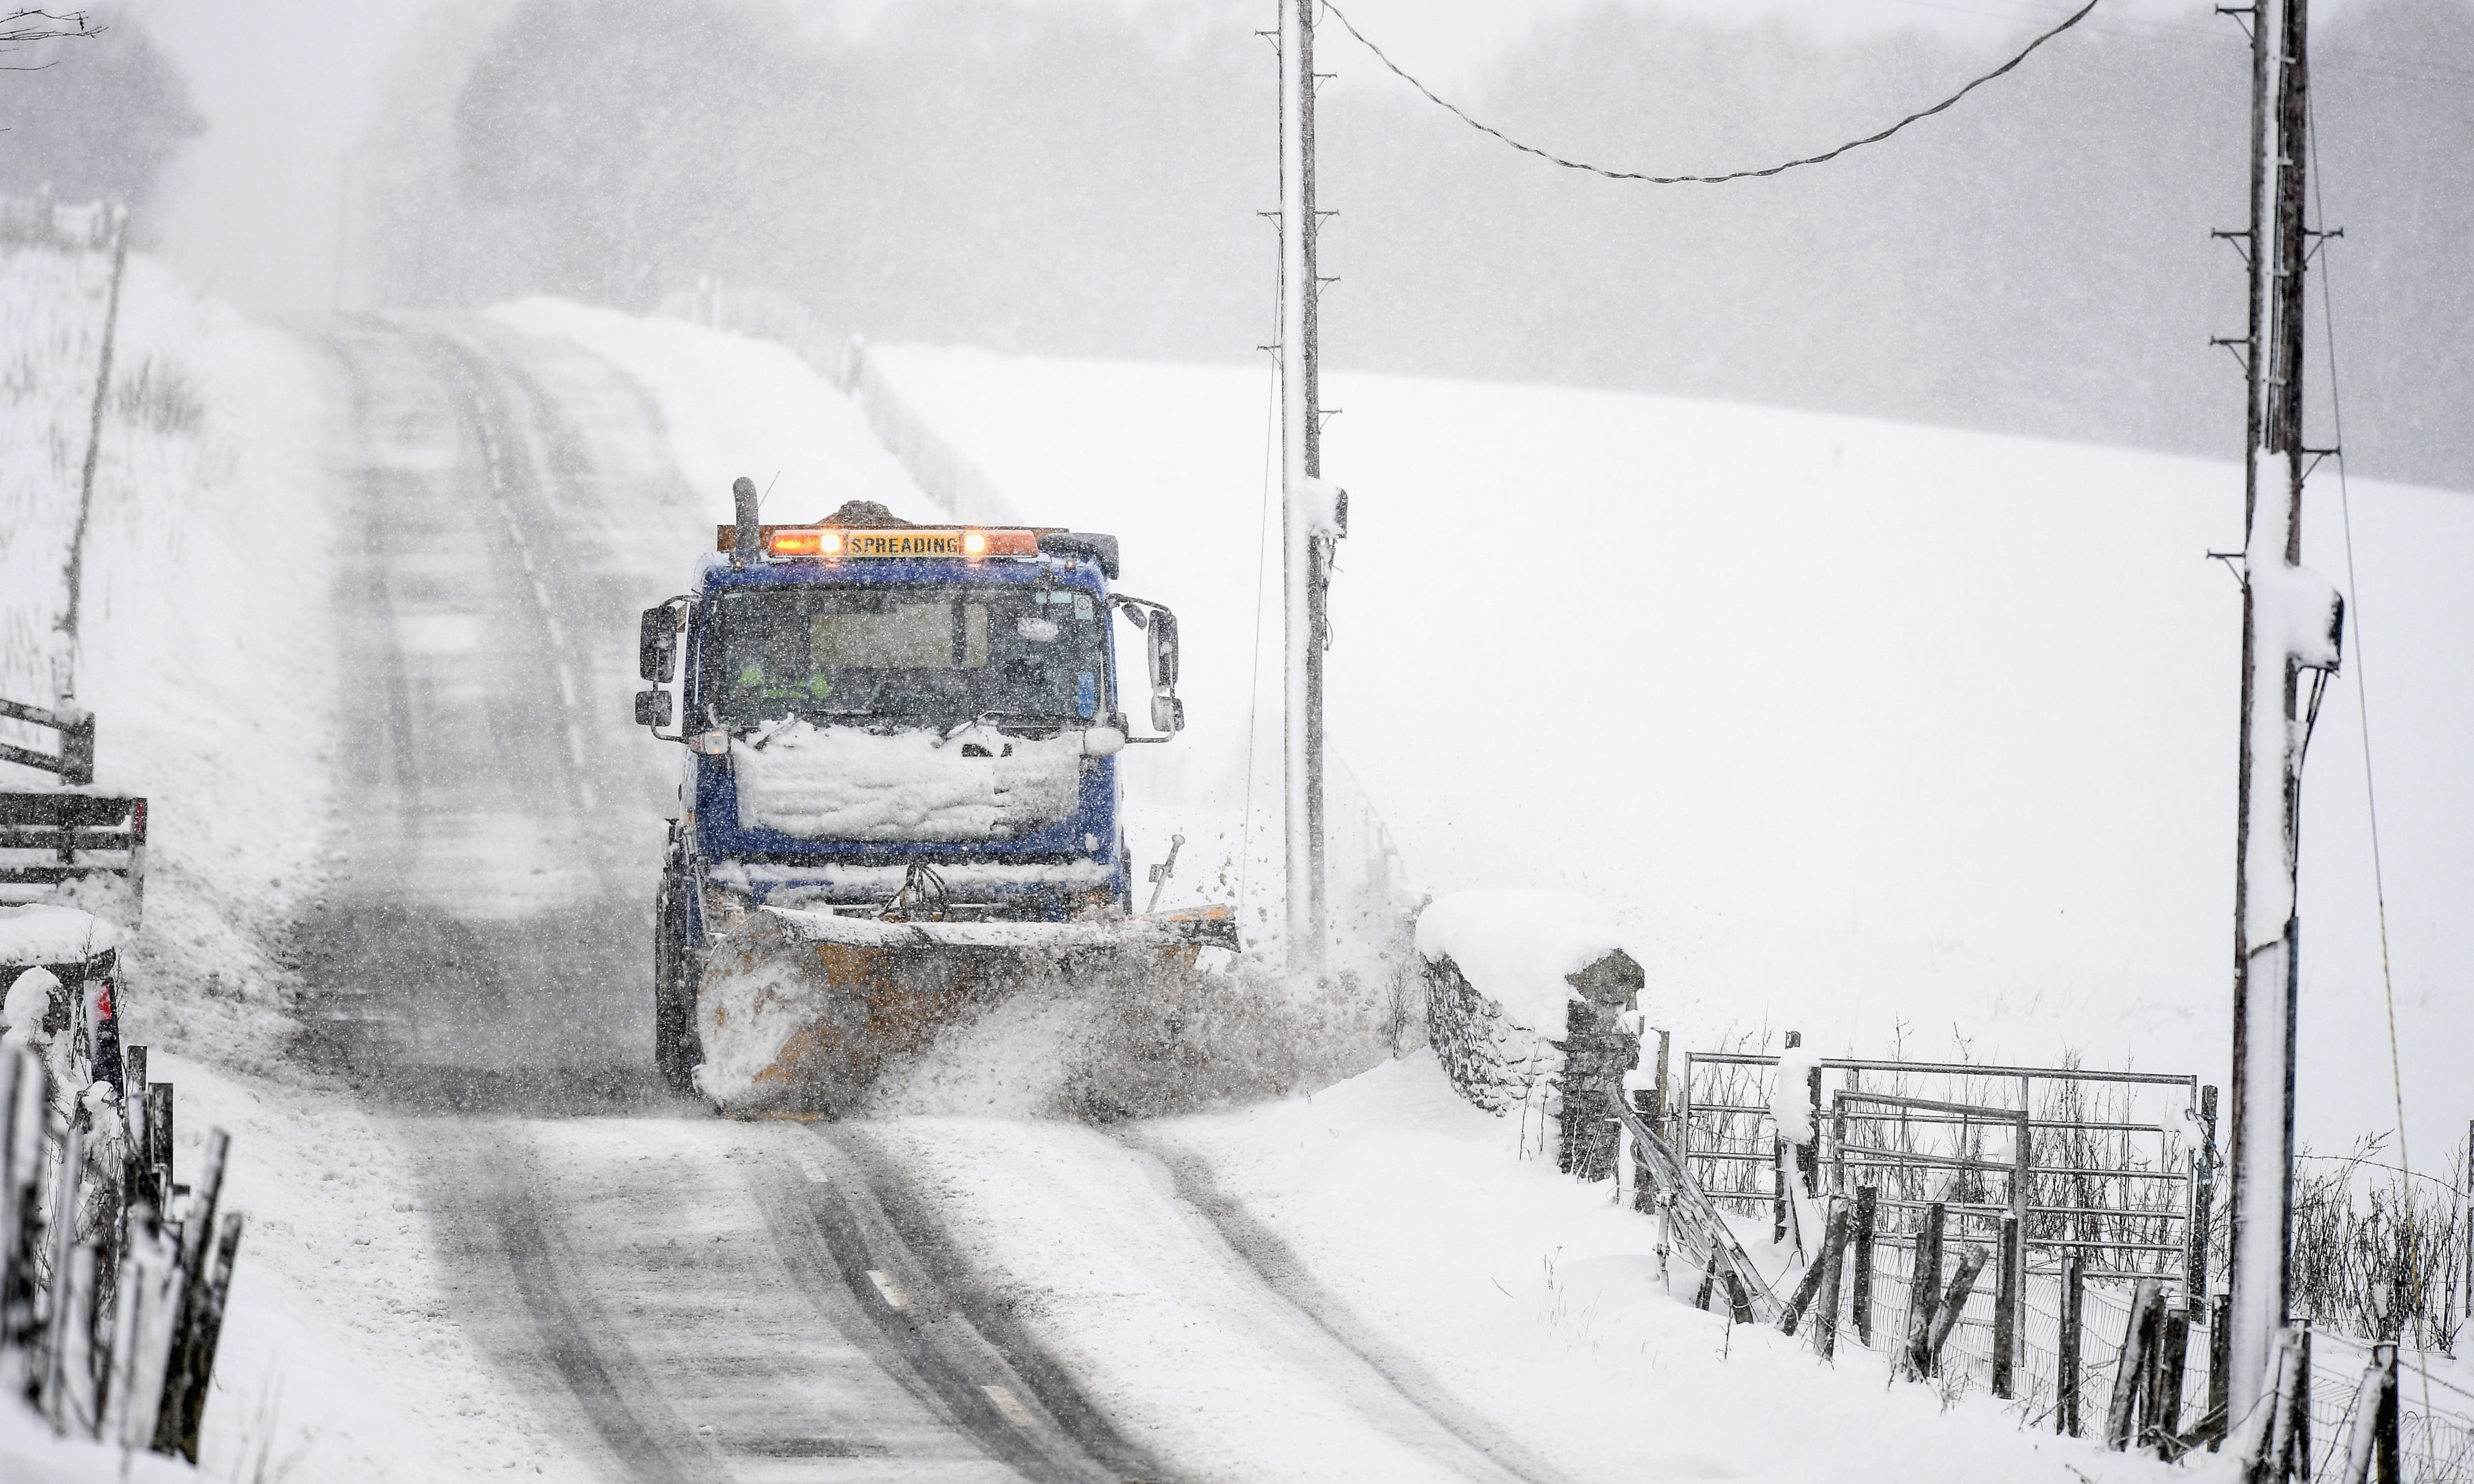 A snow plough on the A93 at the Spittal of Glenshee.